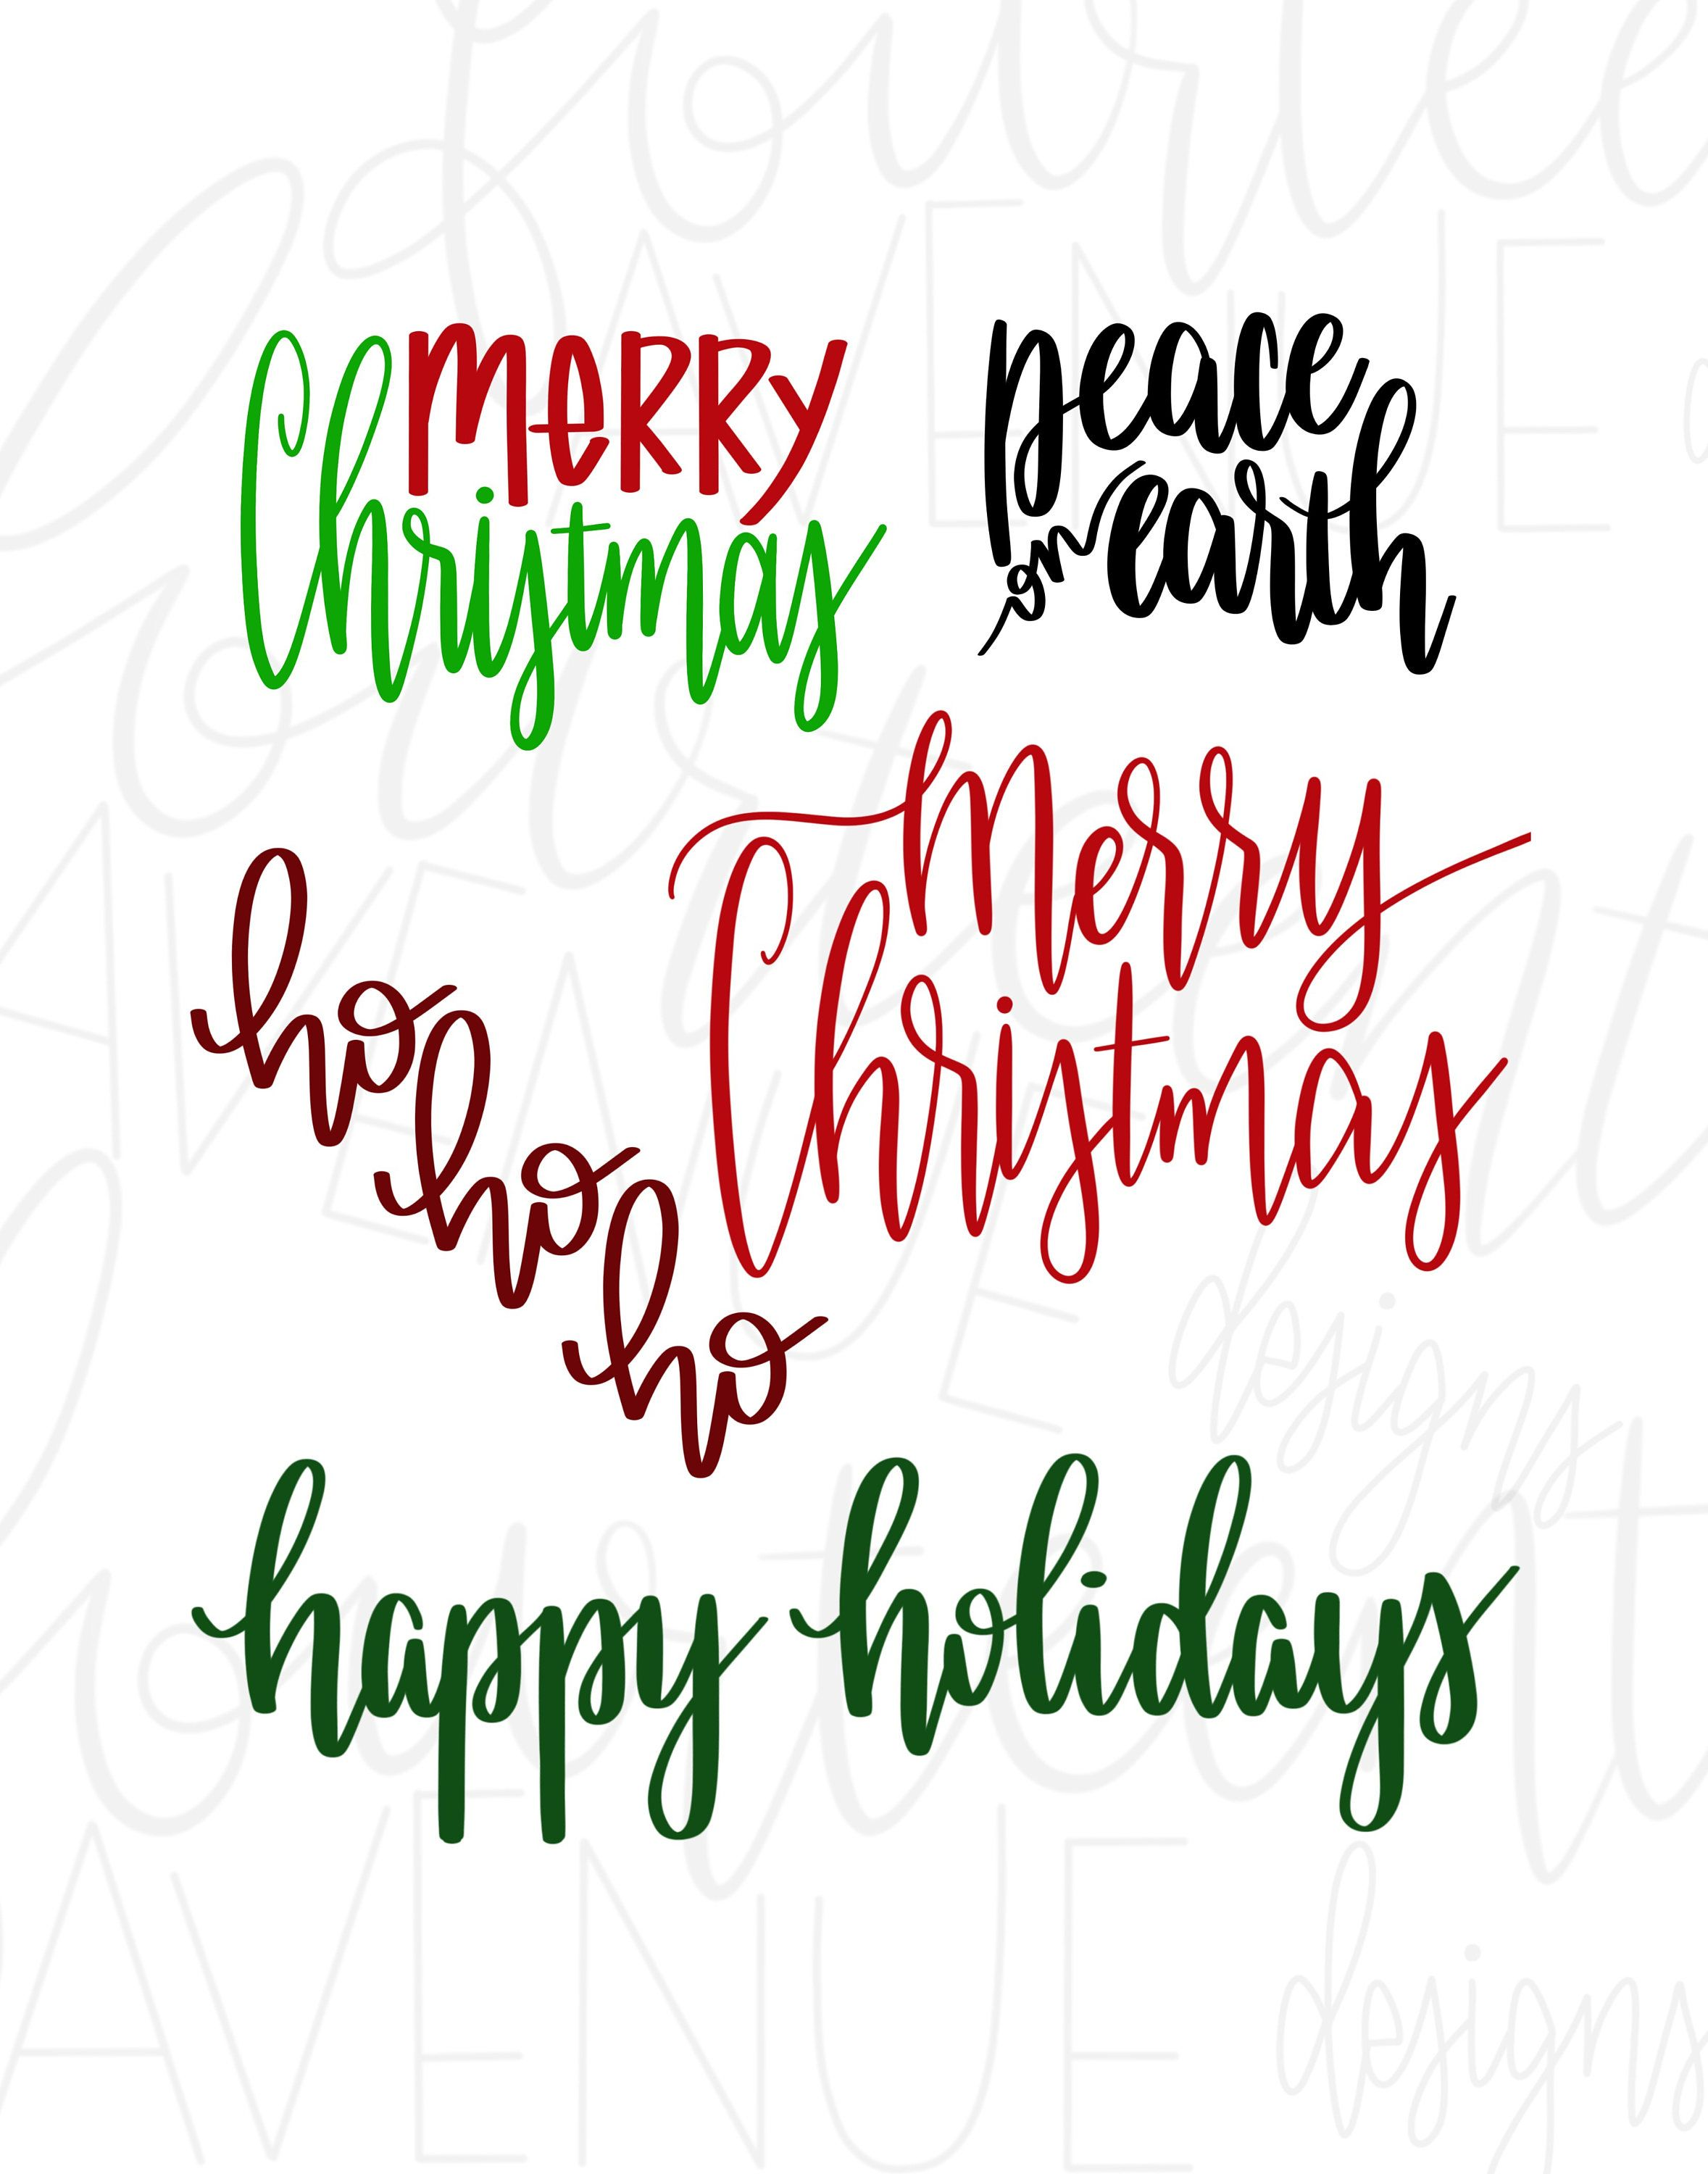 christmas overlays hand lettered holiday overlays christmas card overlays text overlays word - Christmas Overlays